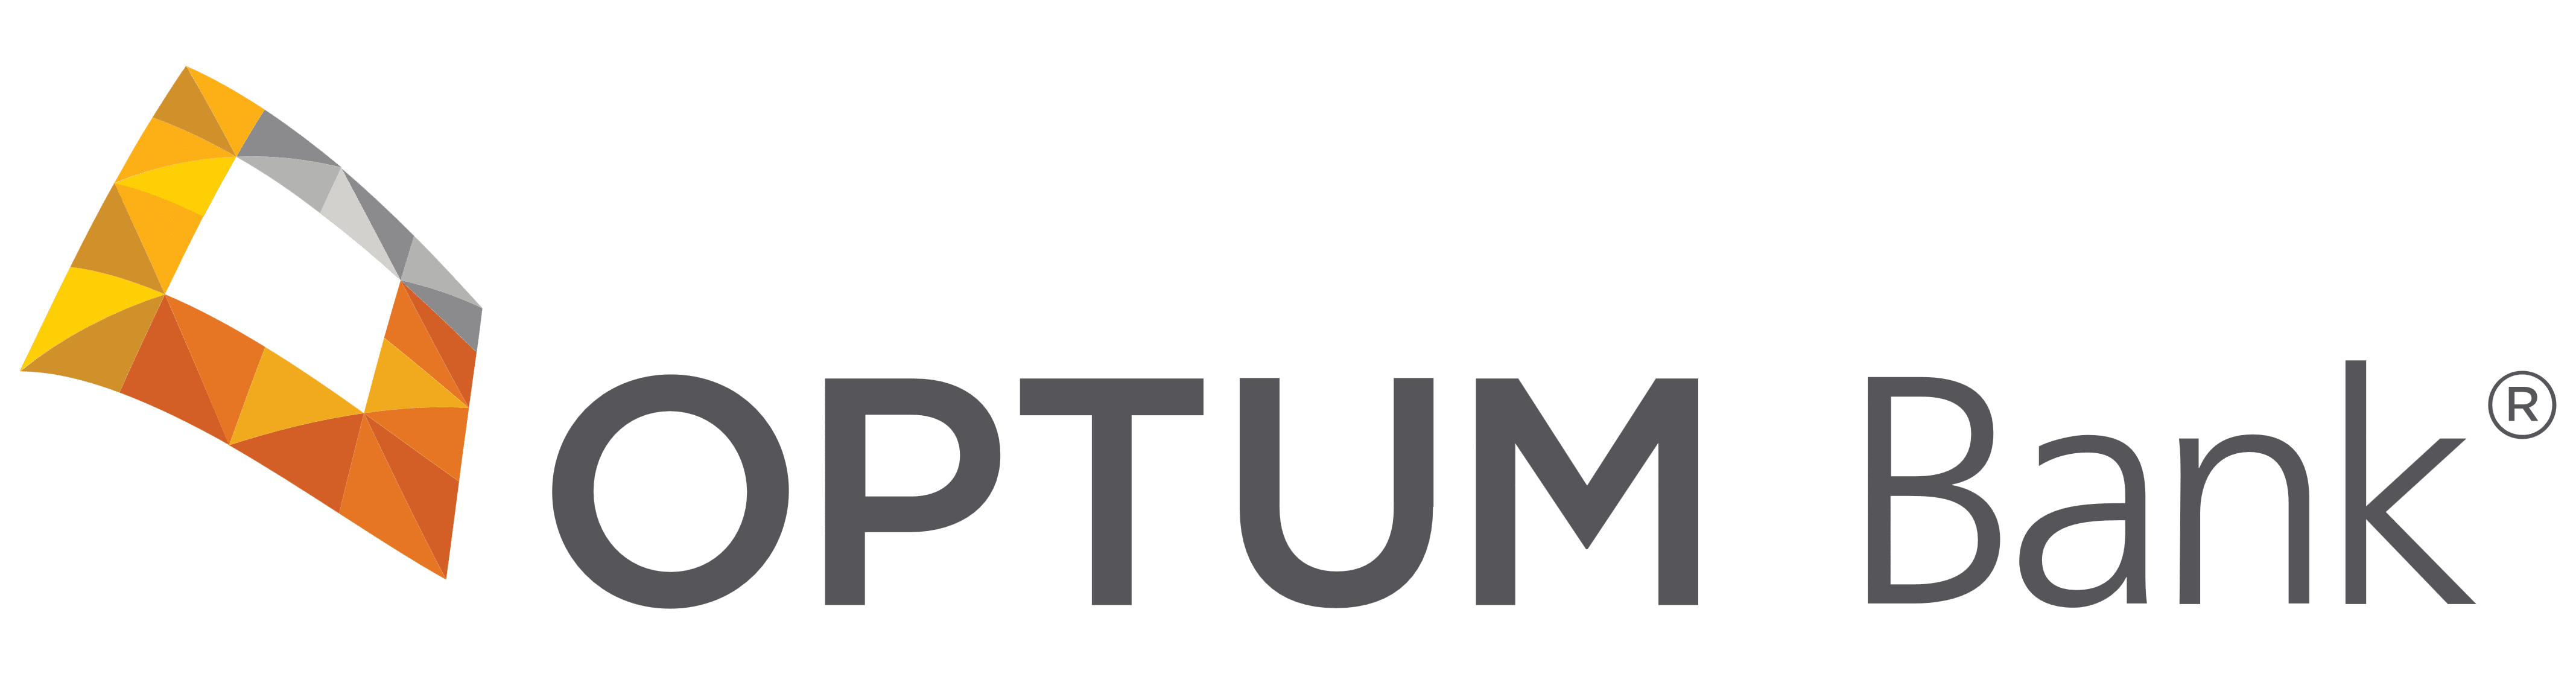 Optum bank hsa investment m g p investments management ltd